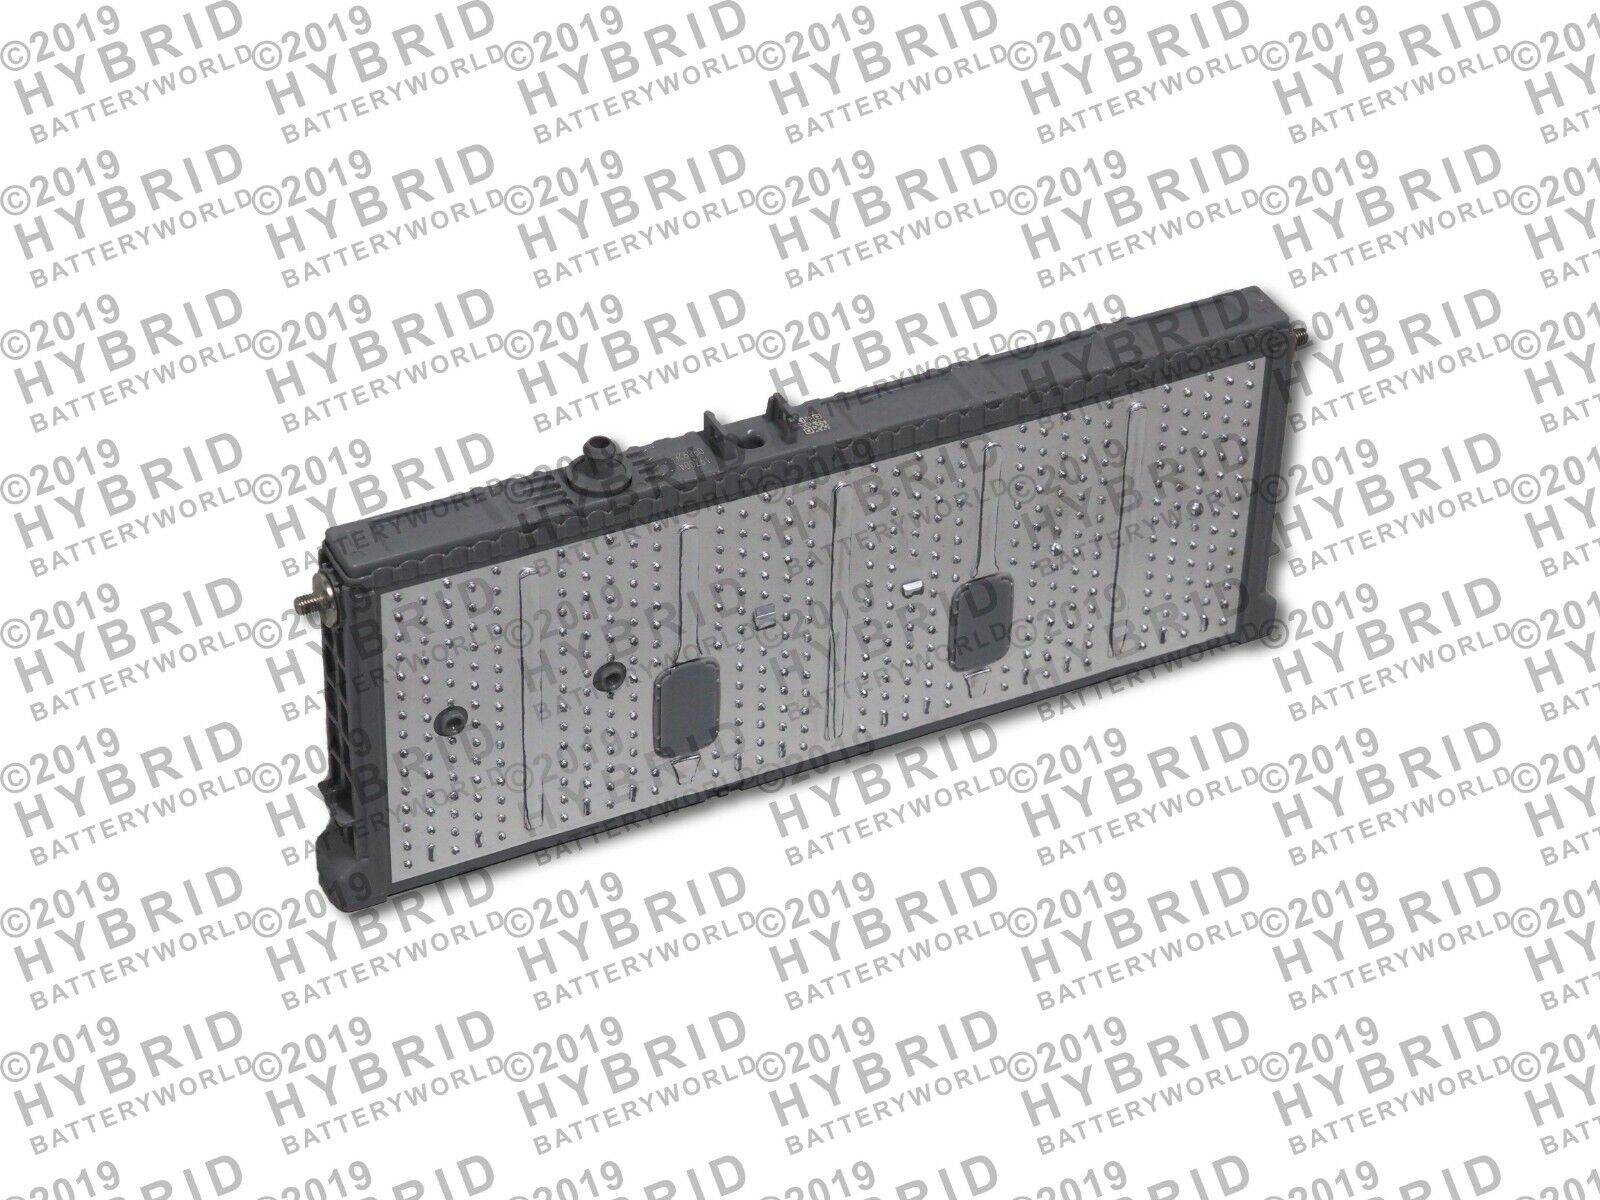 Toyota Prius Camry Hybrid Battery Cells 7 7V   UP Nimh HV TESTED  2004-2009 USED